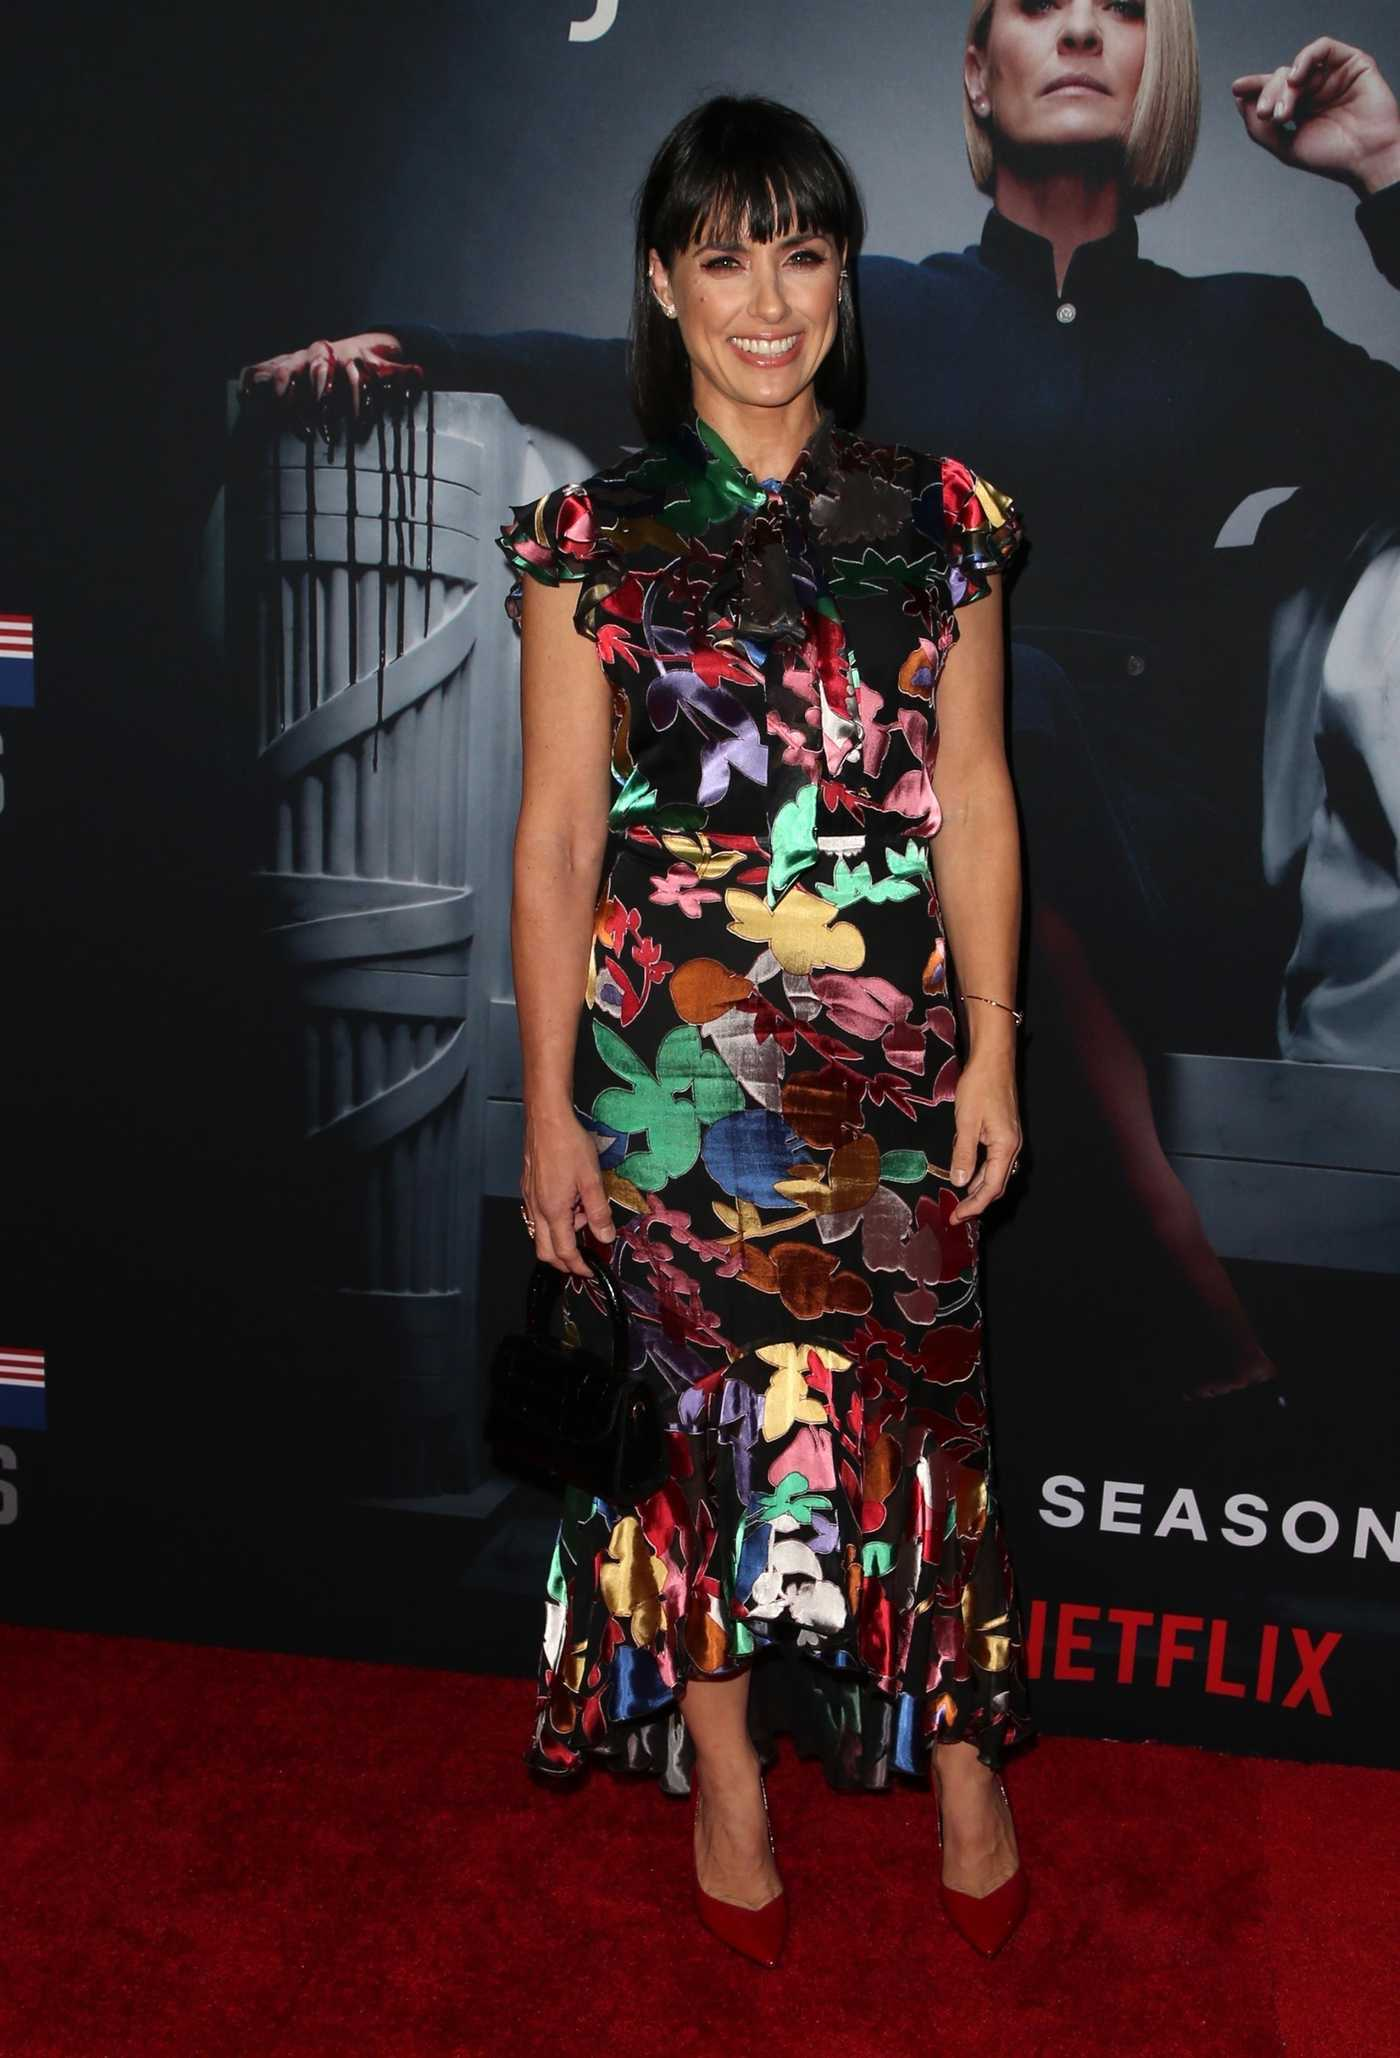 Constance Zimmer at the House of Cards Season 6 Premiere in Los Angeles 10/22/2018